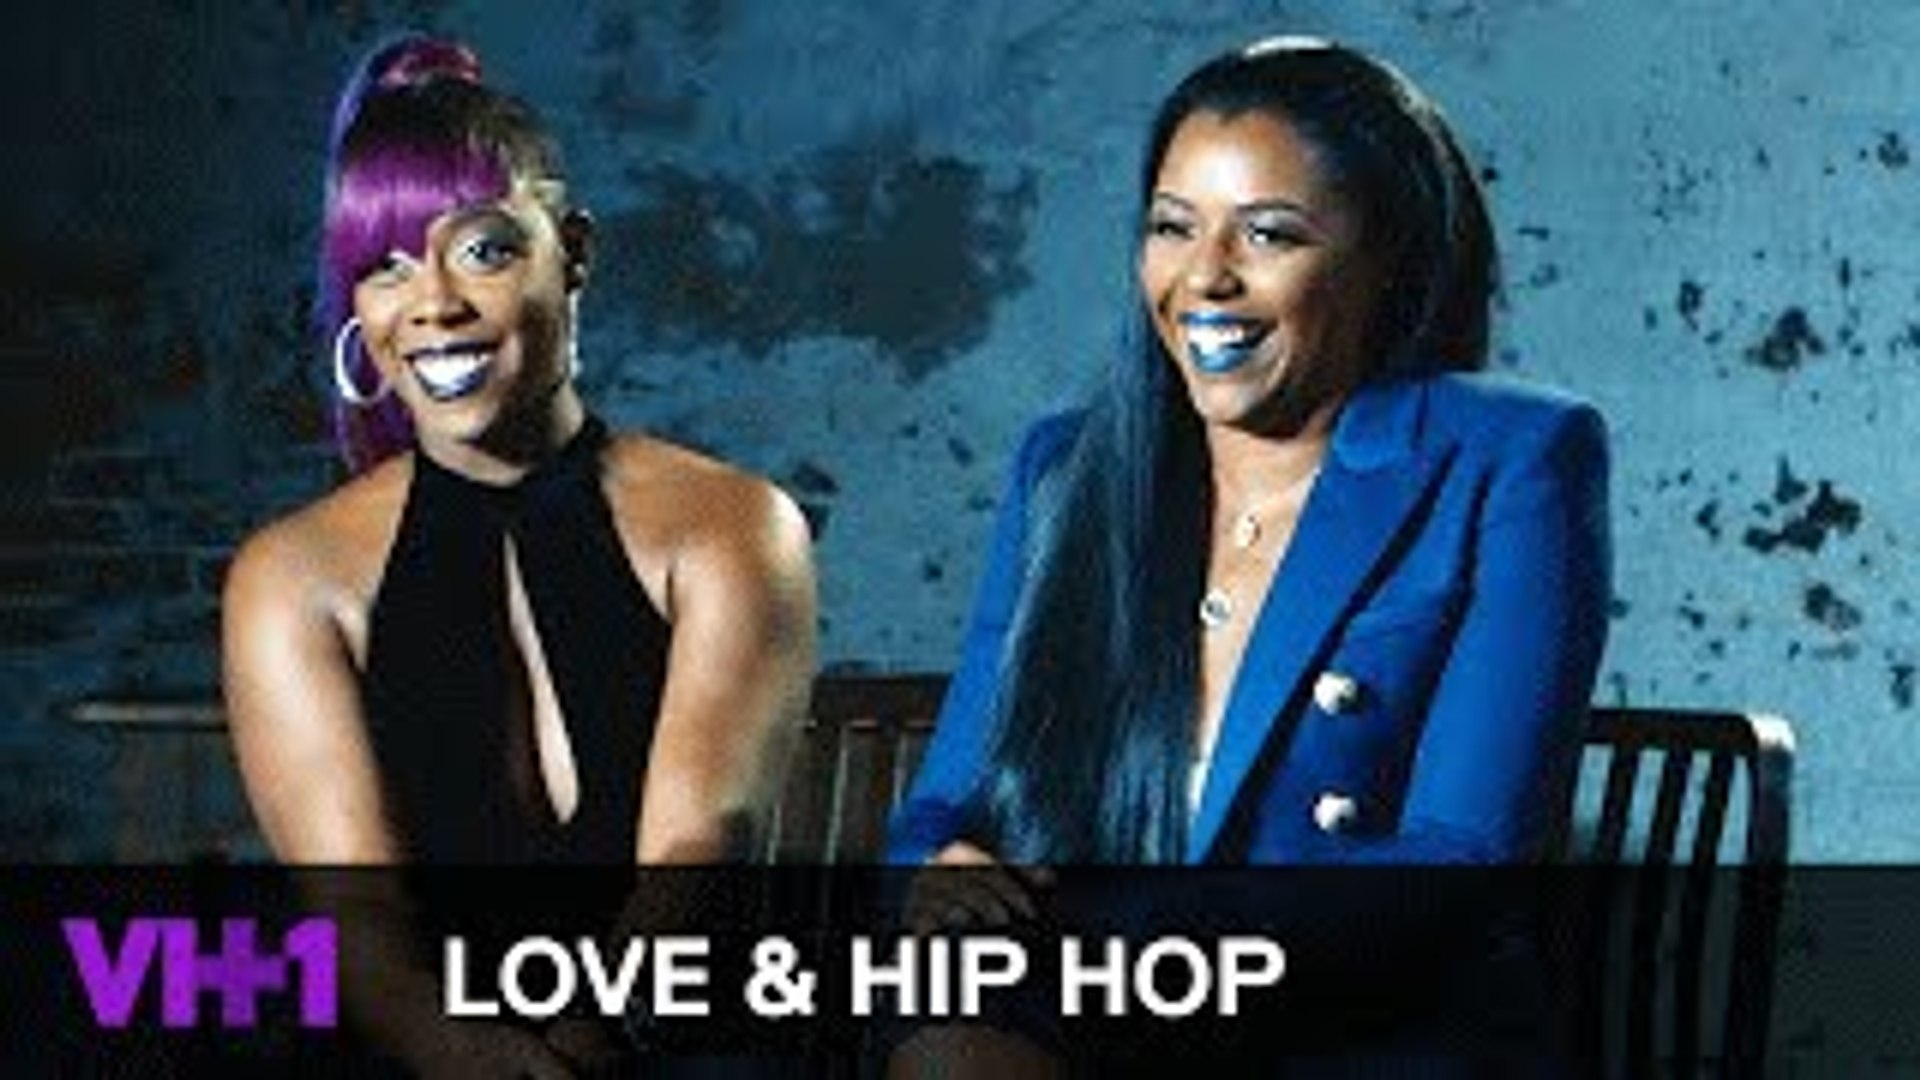 Love & Hip Hop | Meet BBOD, Love & Hip Hops Newest Bad Booshes | VH1